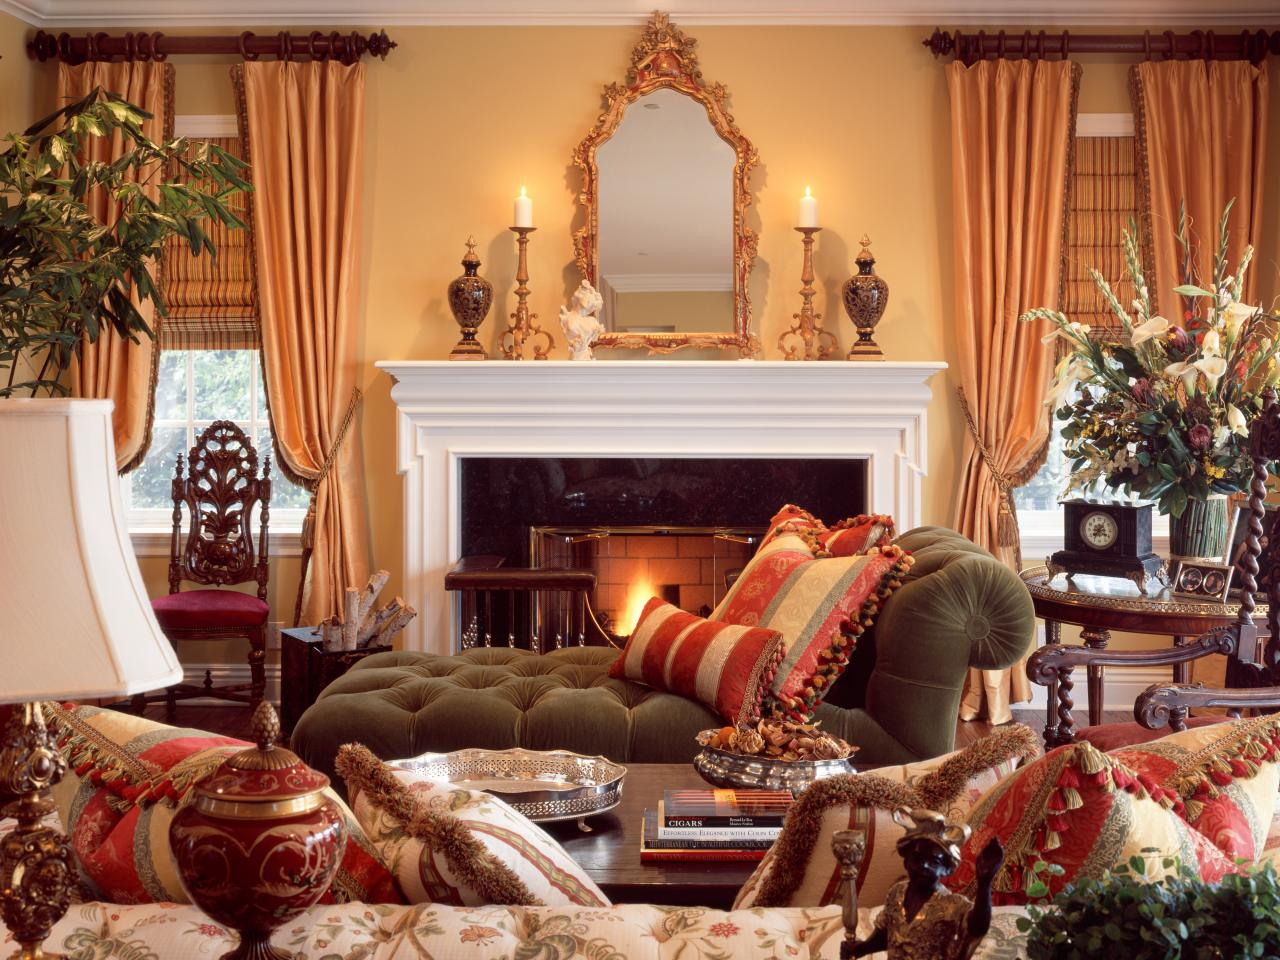 traditional style 101 - Traditional Interior Design Ideas